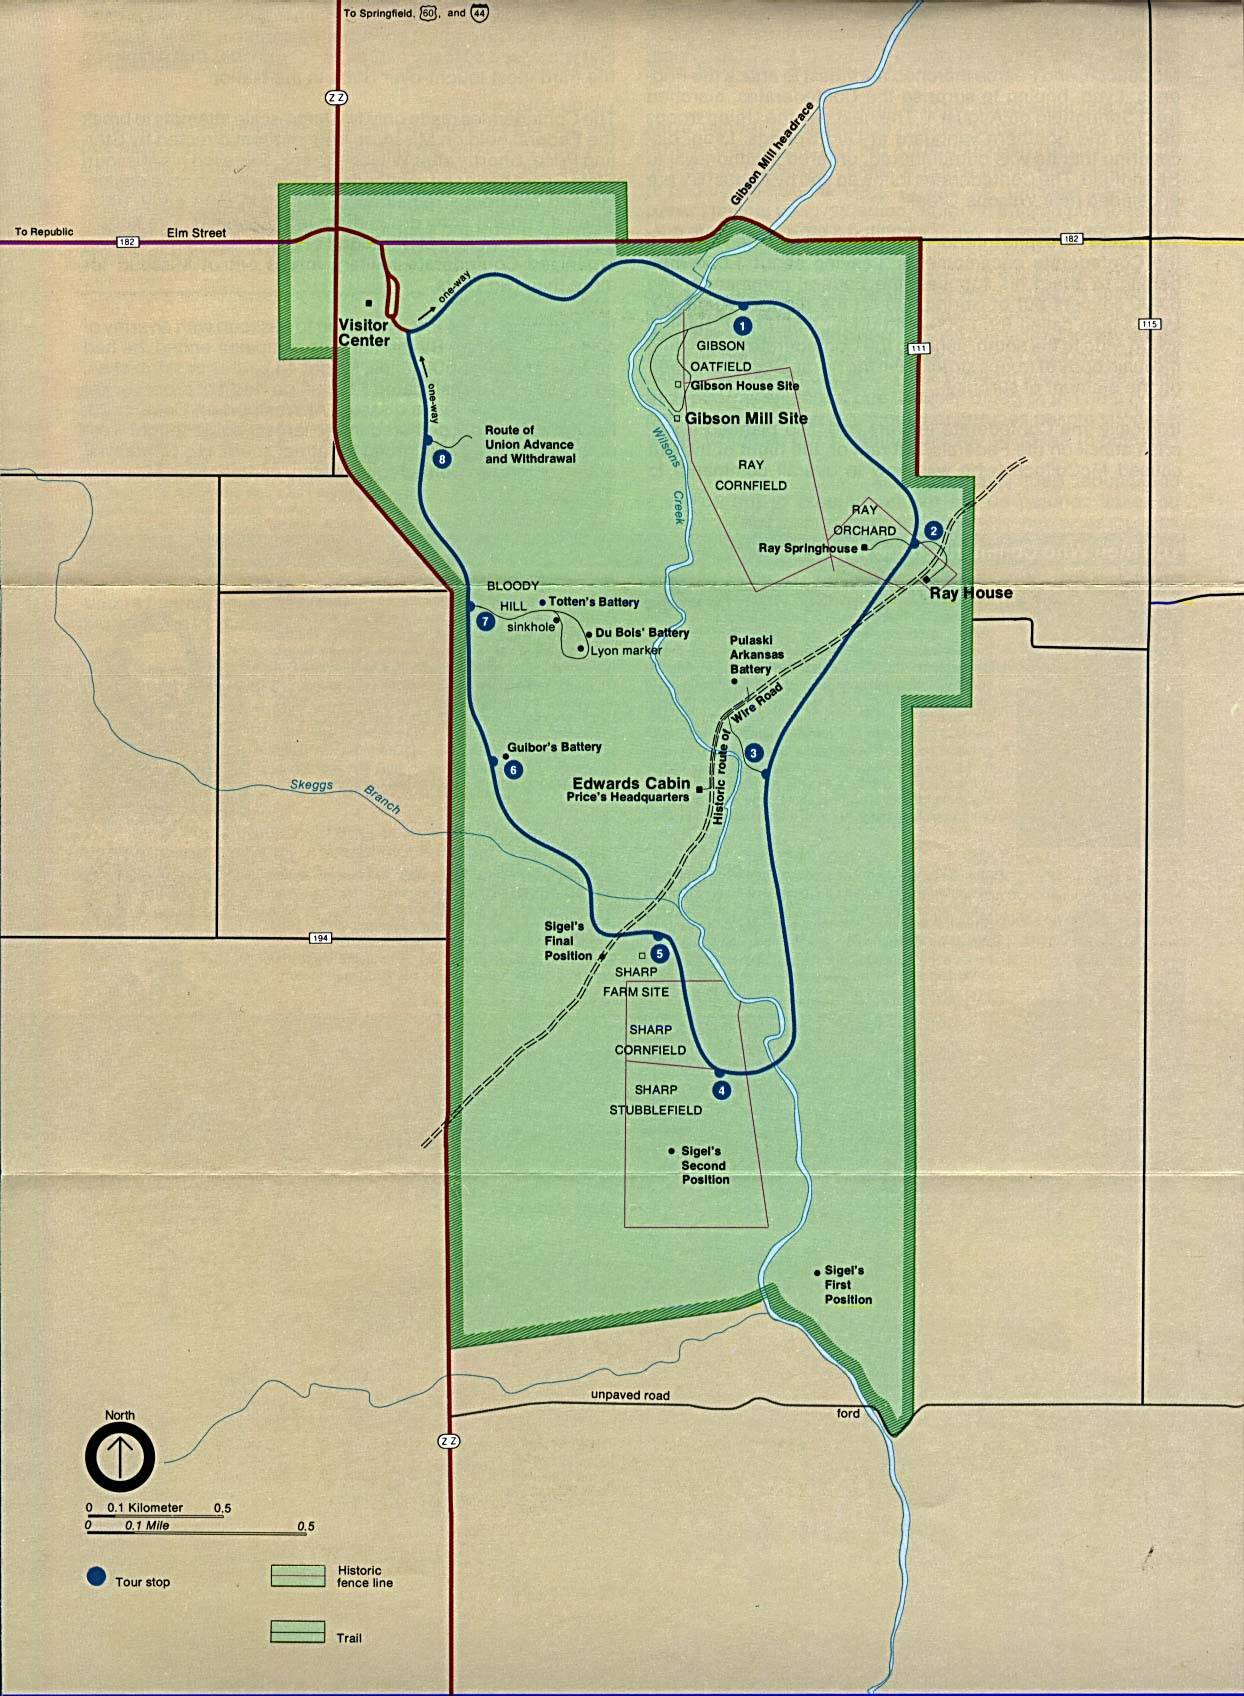 Maps of United States National Parks, Monuments and Historic Sites Wilson's Creek National Battlefield [Missouri] (Park Map) (290K)